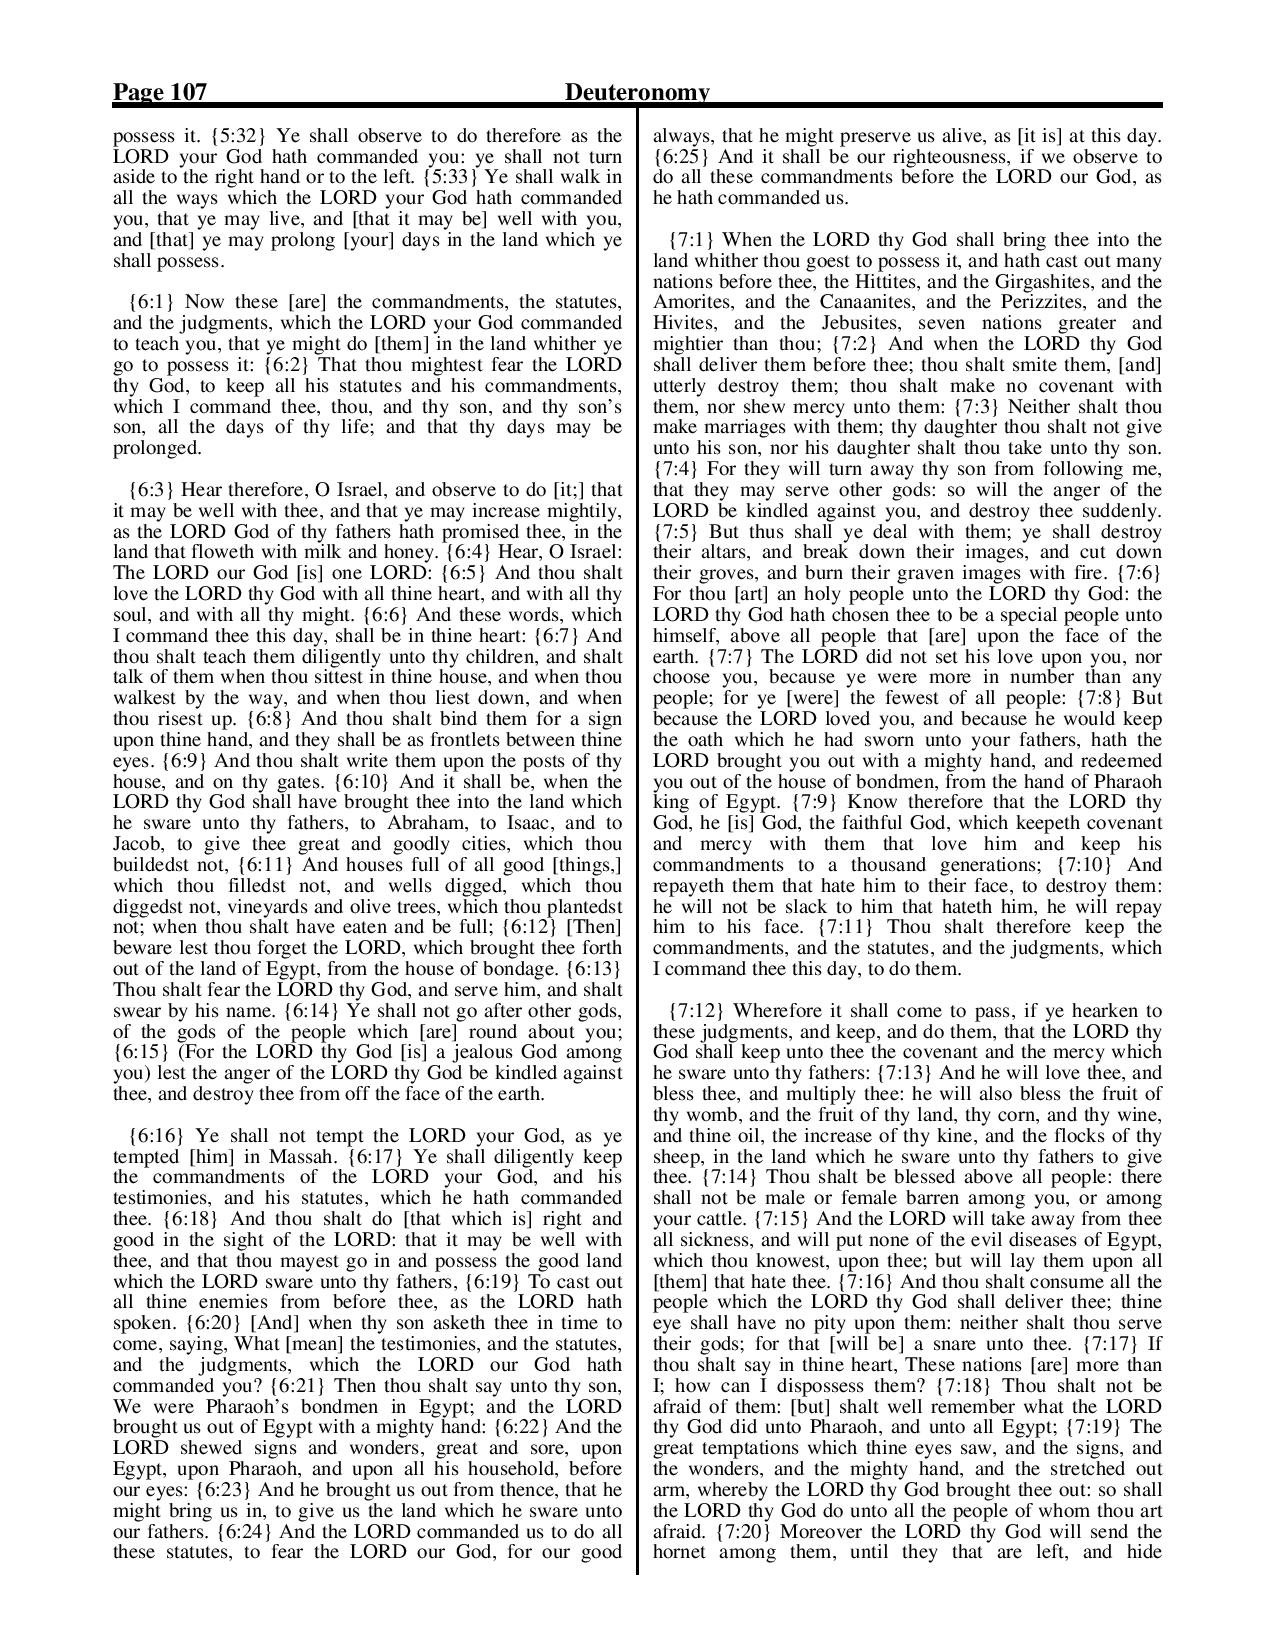 King-James-Bible-KJV-Bible-PDF-page-128